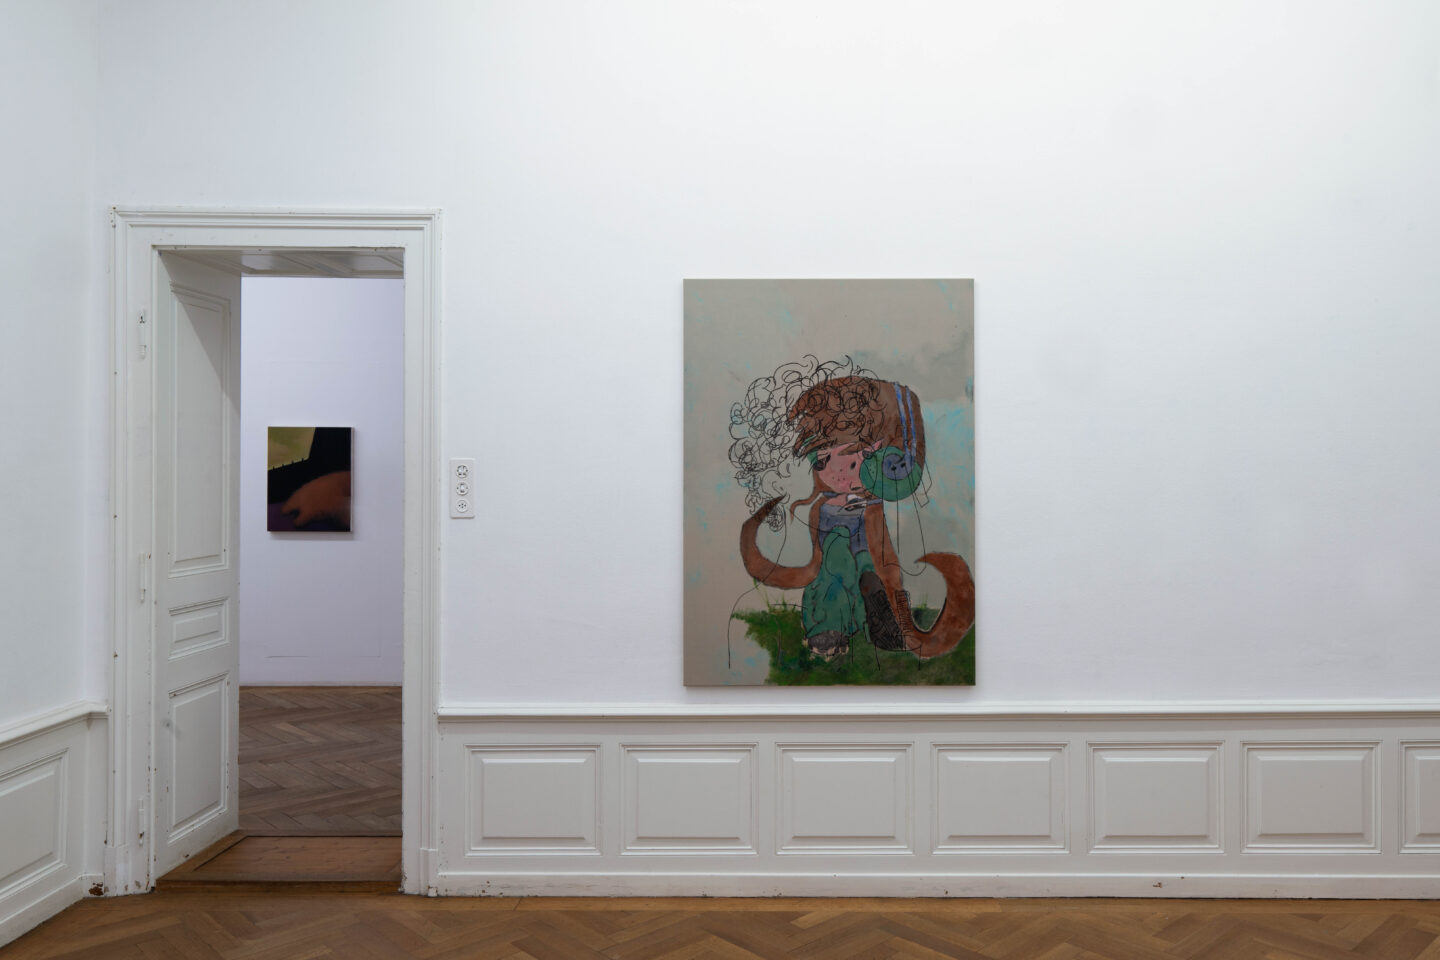 Exhibition View Groupshow «Soft Shell; view on Ray Hegelbach» at Kunsthaus Langenthal, Langenthal, 2020 / Photo: CE / Courtesy: the artists and Kunsthaus Langenthal